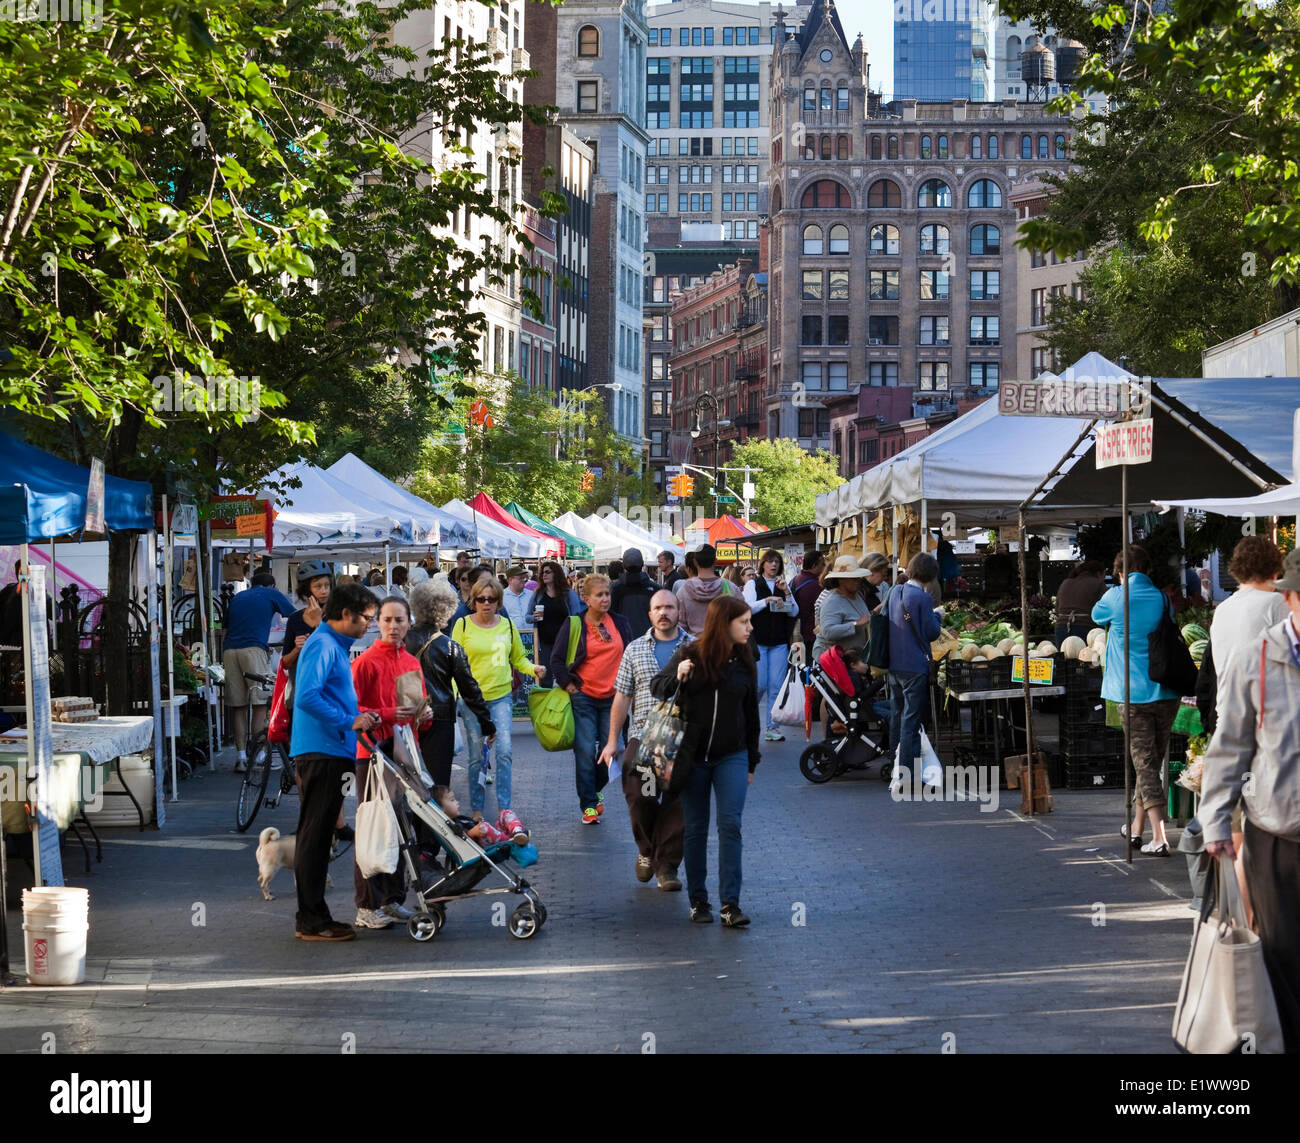 Union Square Greenmarket is a farmers market that is held four days a week in Union Square Park and where up to - Stock Image